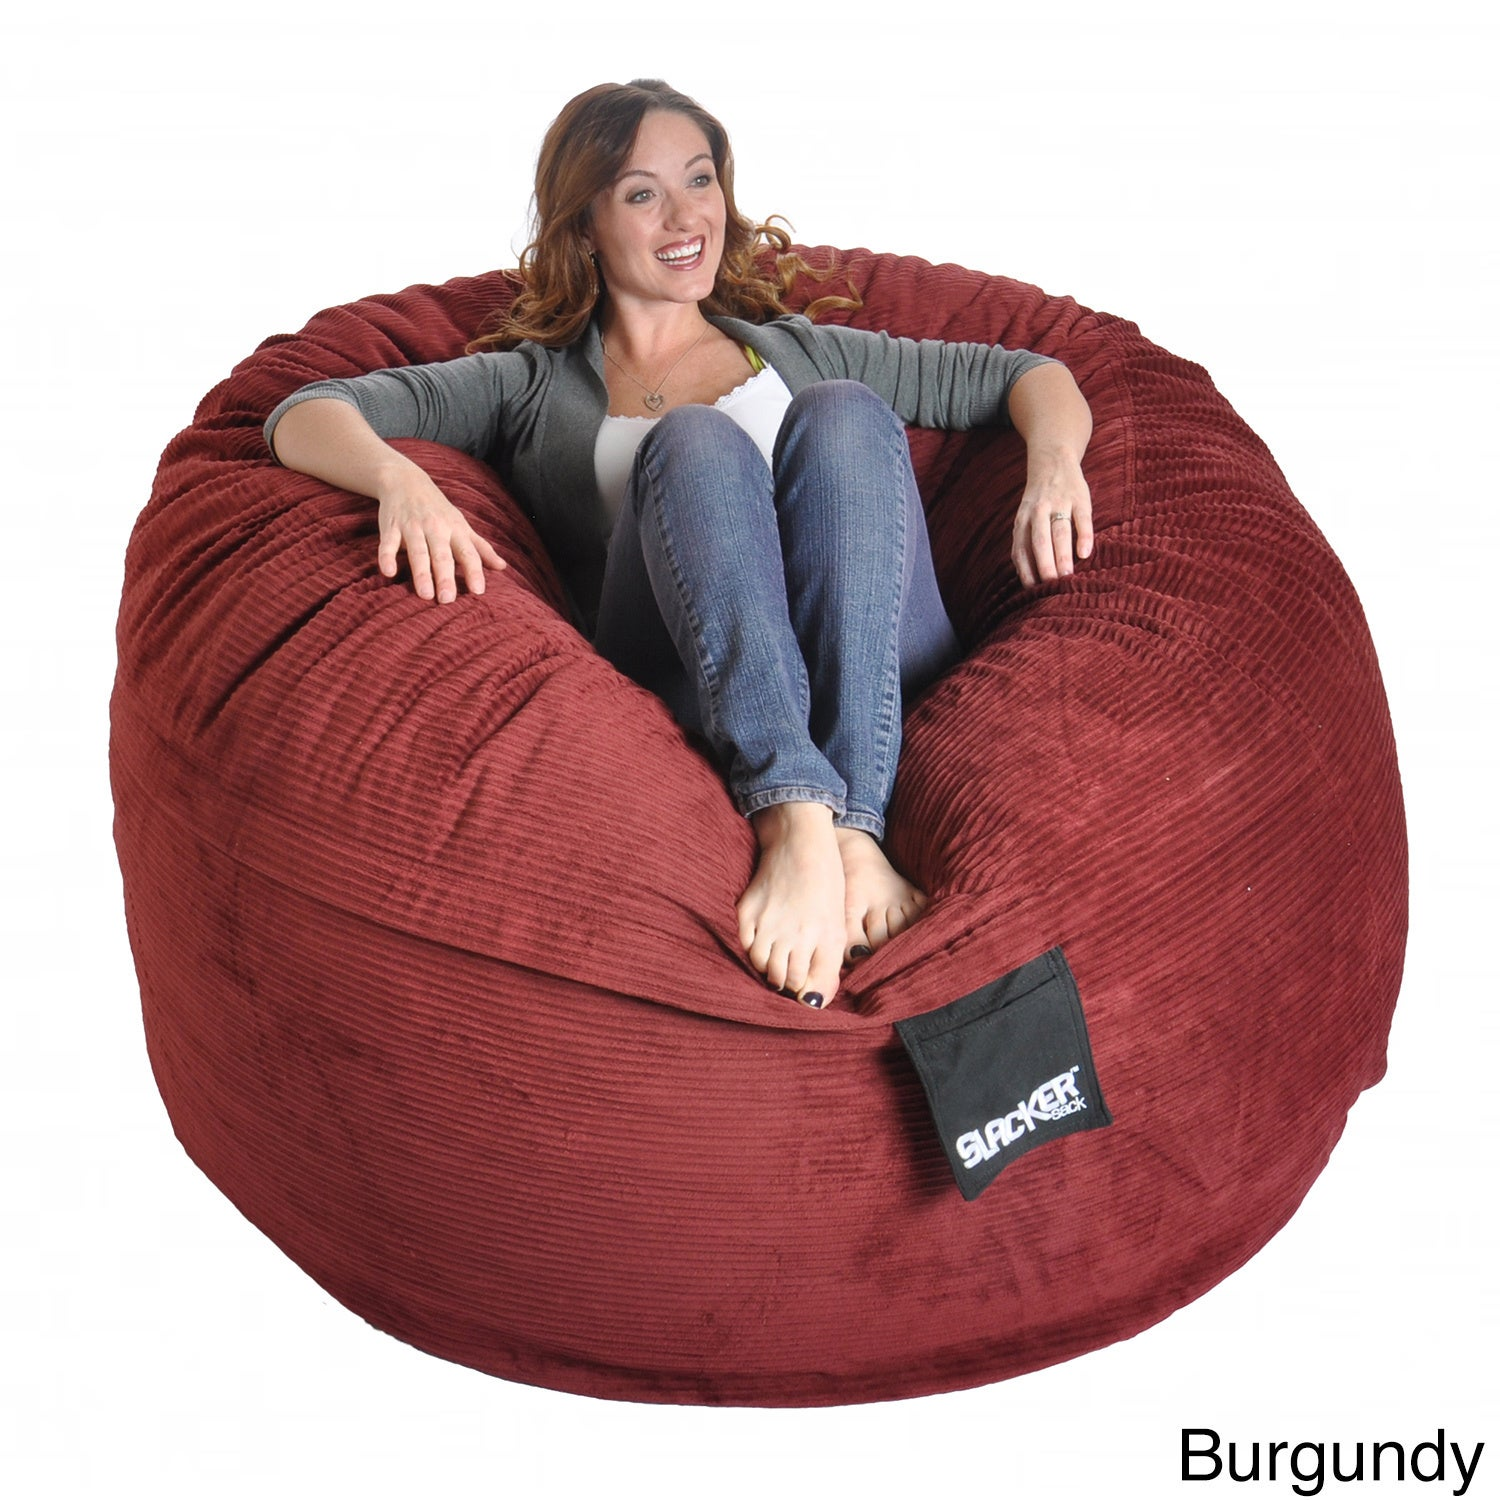 Slacker Sack 5 Foot Round Corduroy Bean Bag Chair   Free Shipping Today    Overstock.com   15877958